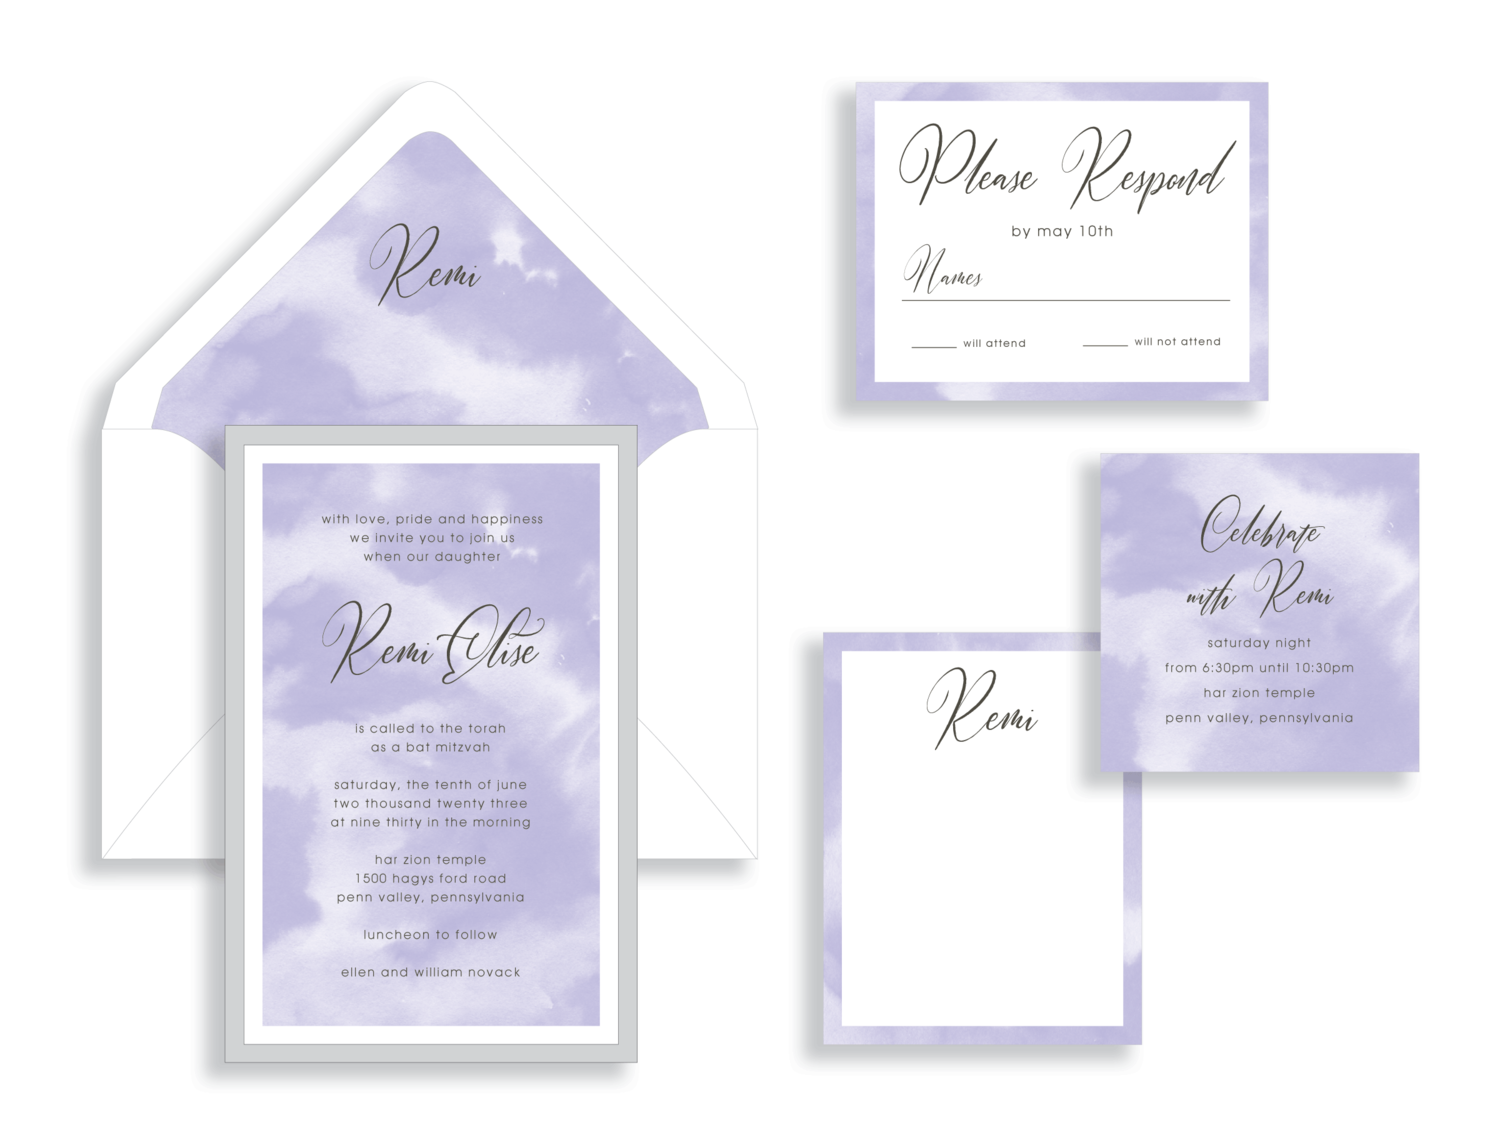 Remi Bat Mitzvah Invitation purple clouds silver layer.  Bat Mitzvah invitations Northern Virginia Fairfax.